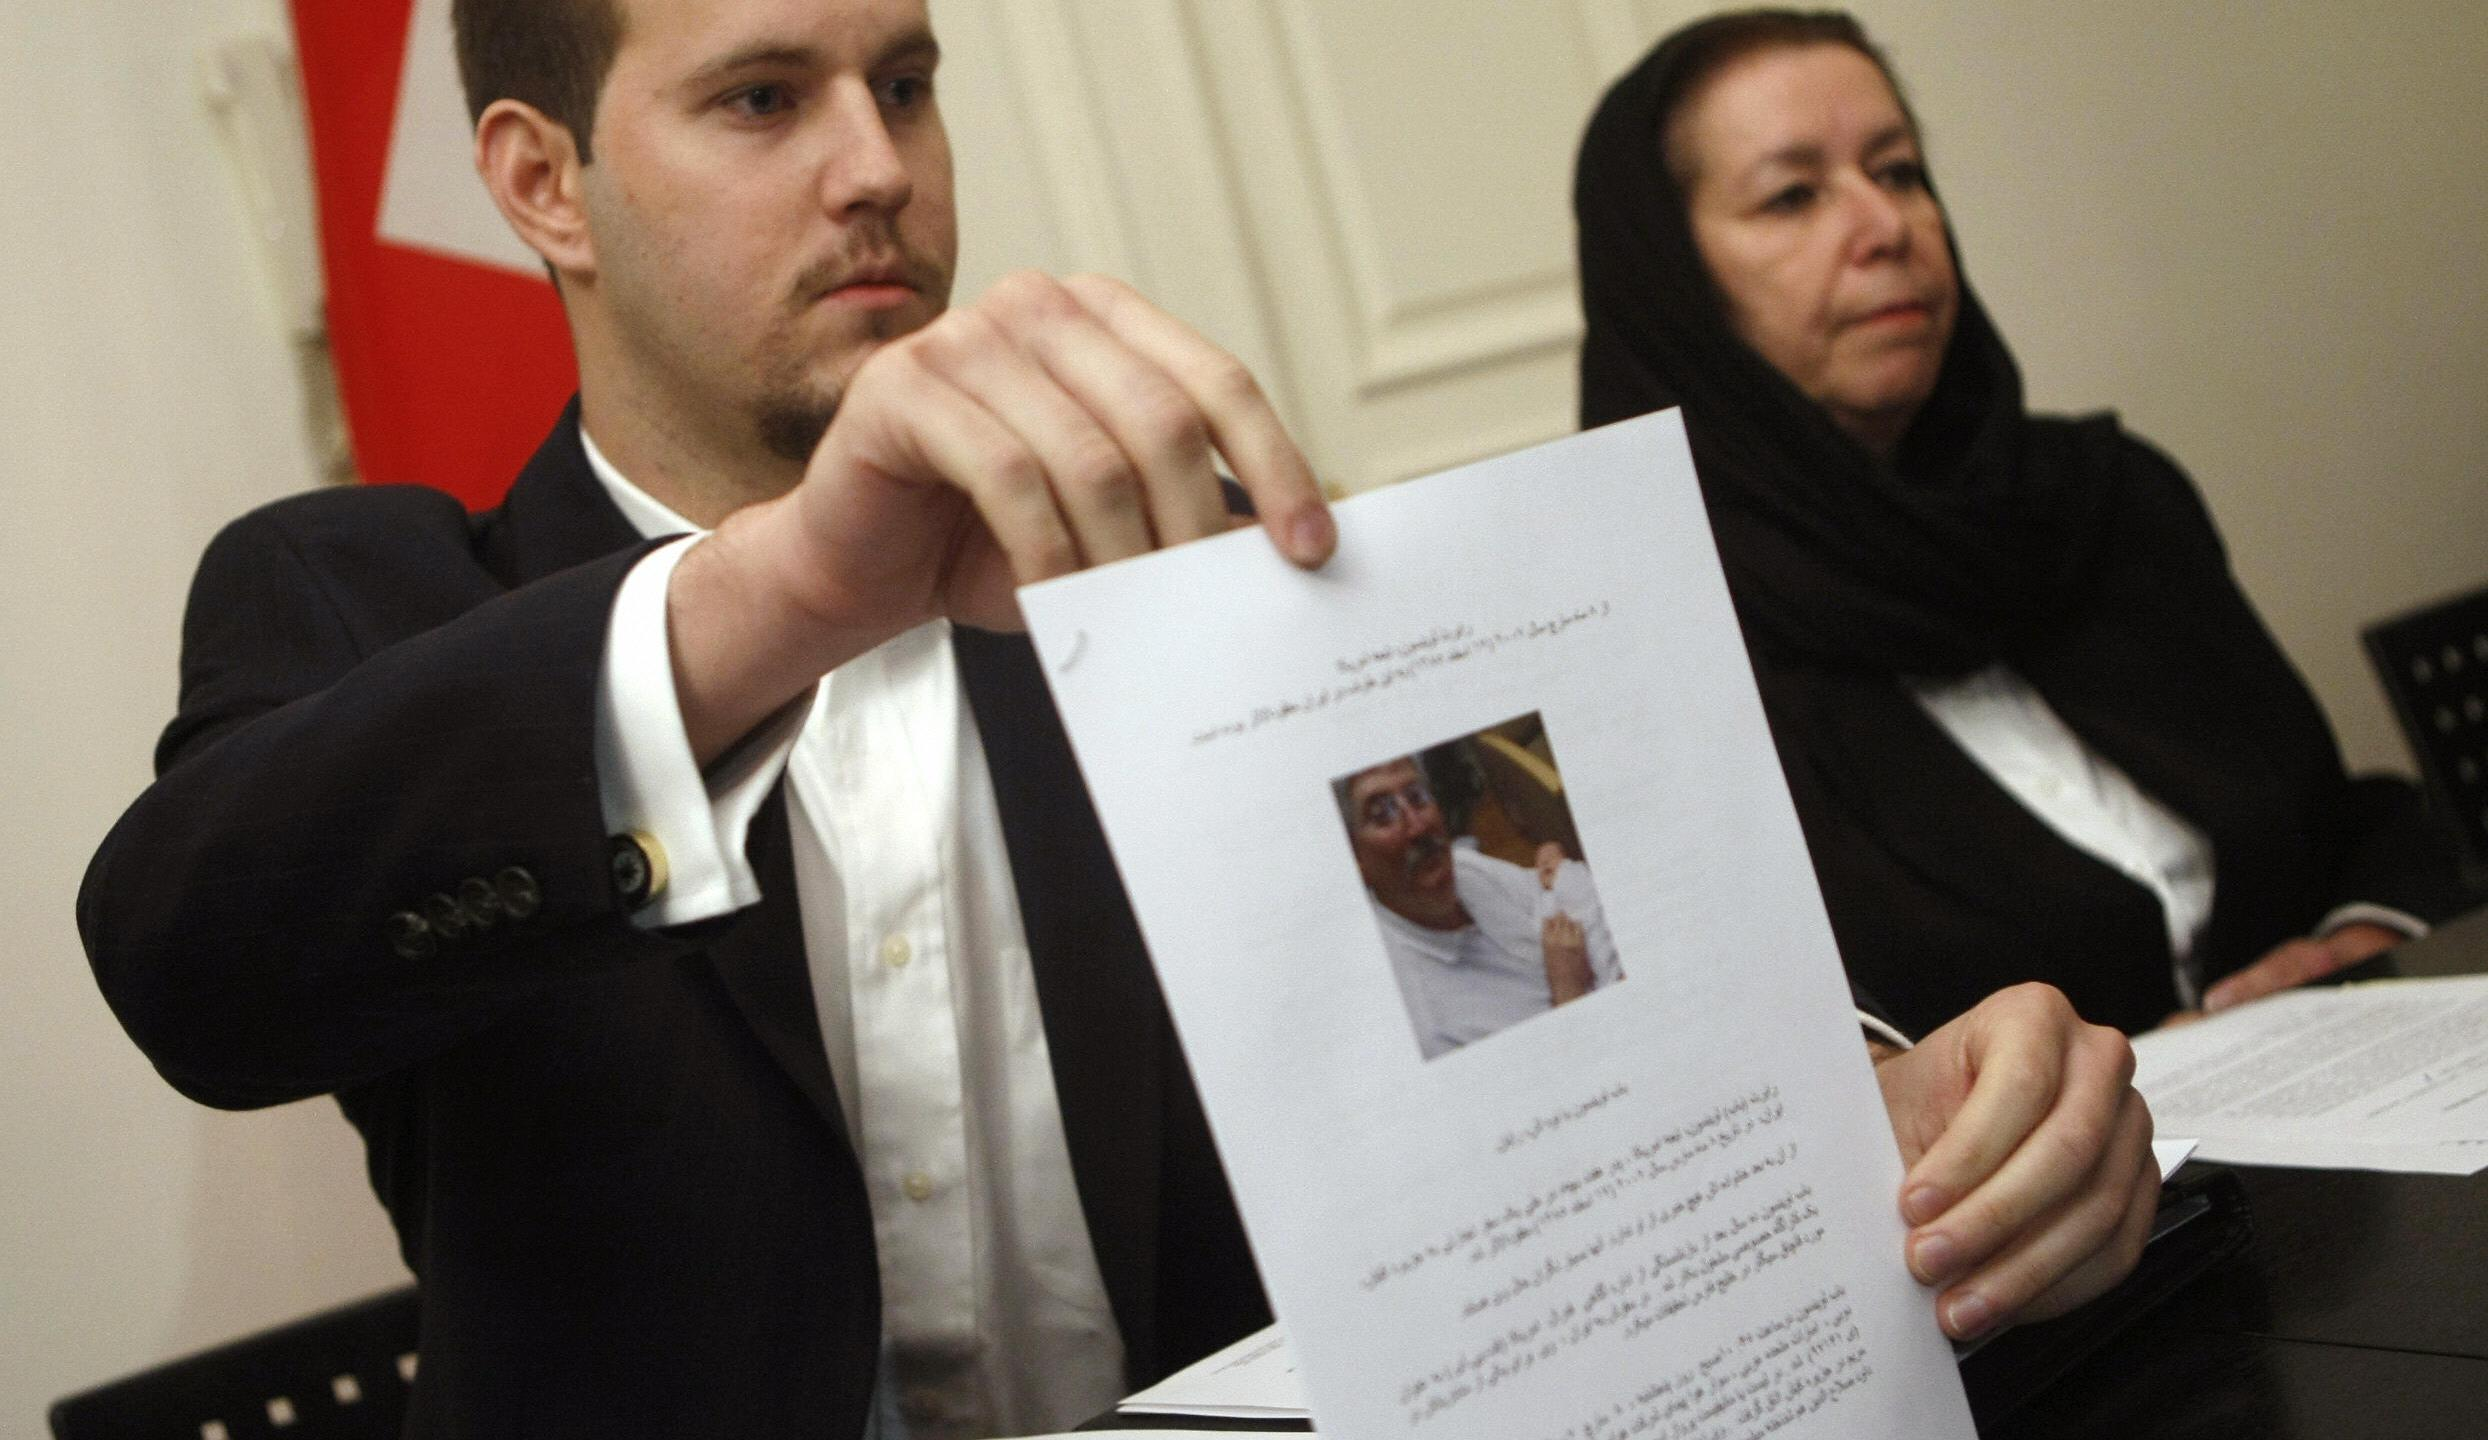 Daniel Levinson (left) shows a picture of his father, ex-FBI agent Robert Levinson, holding his grandson Ryan during a press conference with his mother Christine at the Swiss embassy in Tehran on Dec. 22 2007. (BEHROUZ MEHRI/AFP via Getty Images)